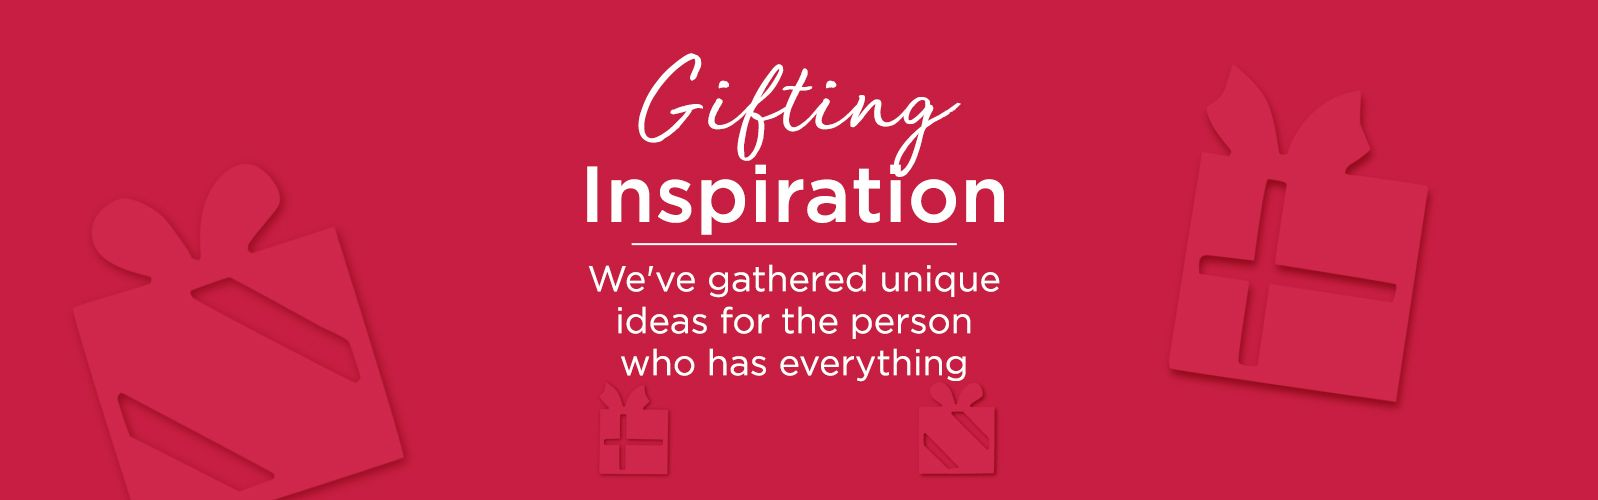 Gifting Inspiration  We've gathered unique ideas for the person who has everything